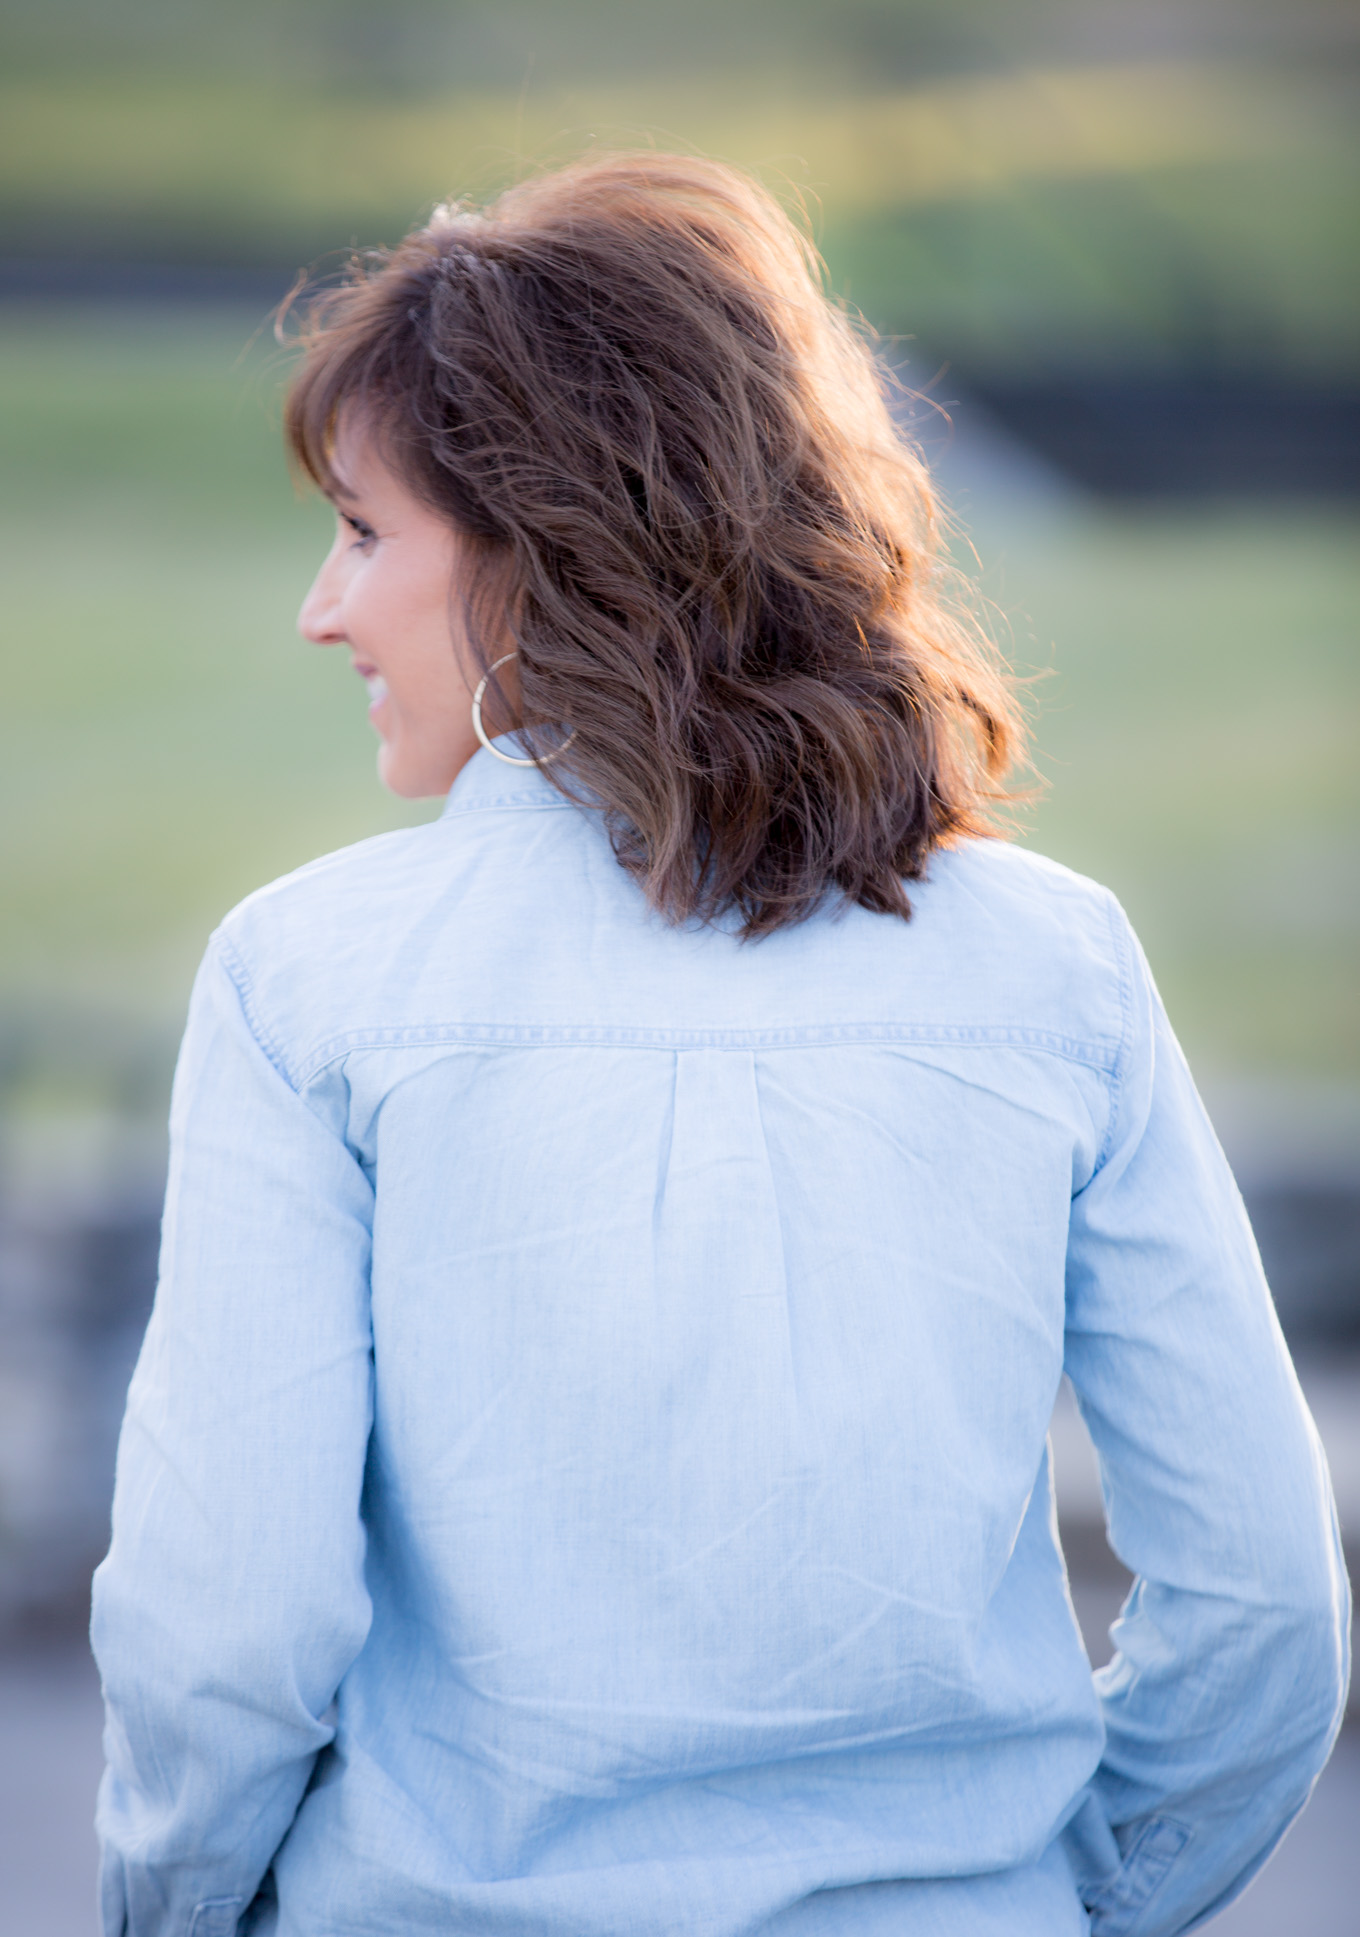 Fashion blogger, Cyndi Spivey, shares How To Add Soft Curls To Your Hair